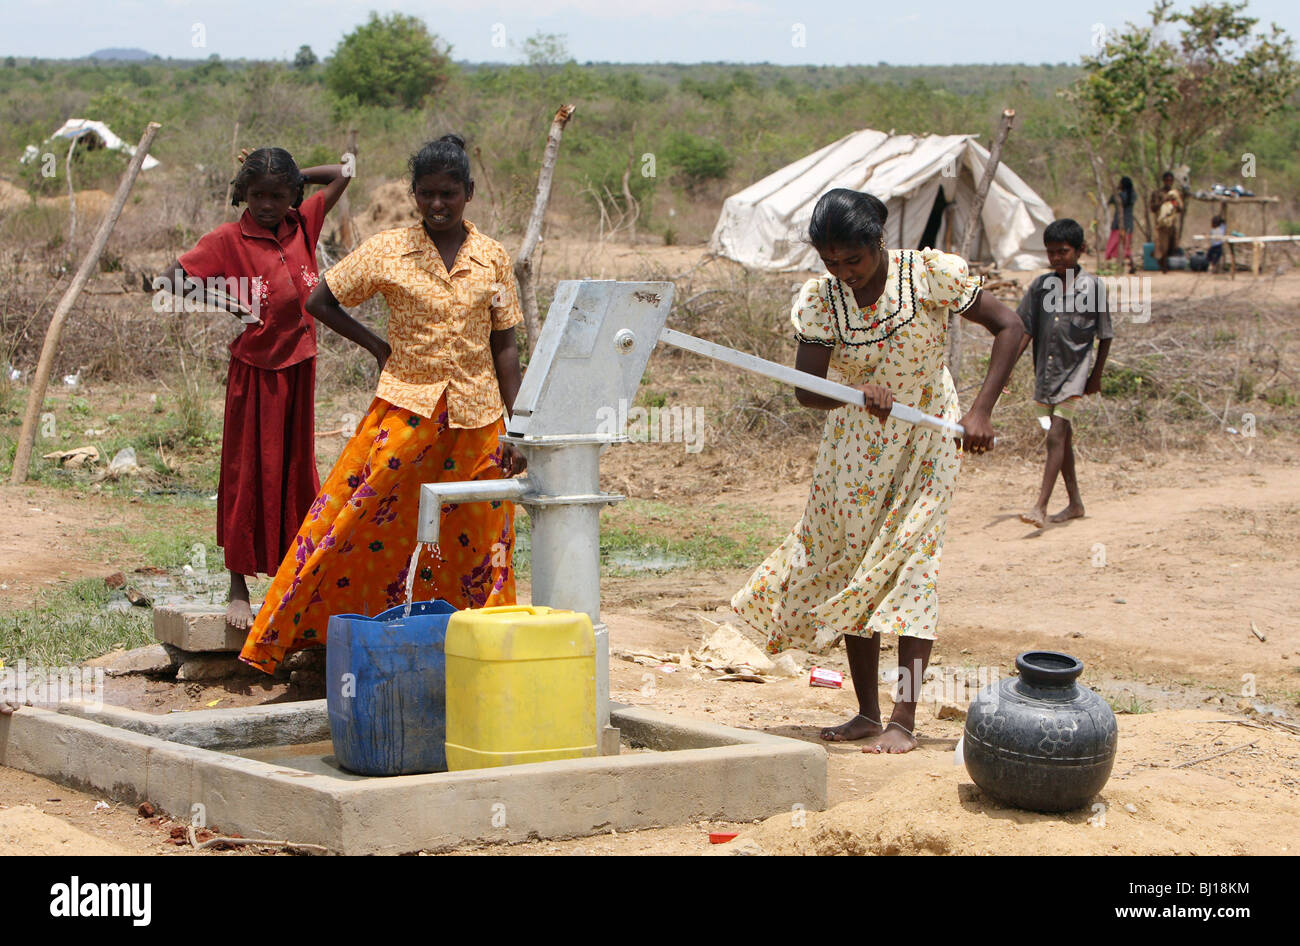 Women doing laundry at a water pump in a shelter for Internally Displaced People, Vakaneri, Sri Lanka Stock Photo